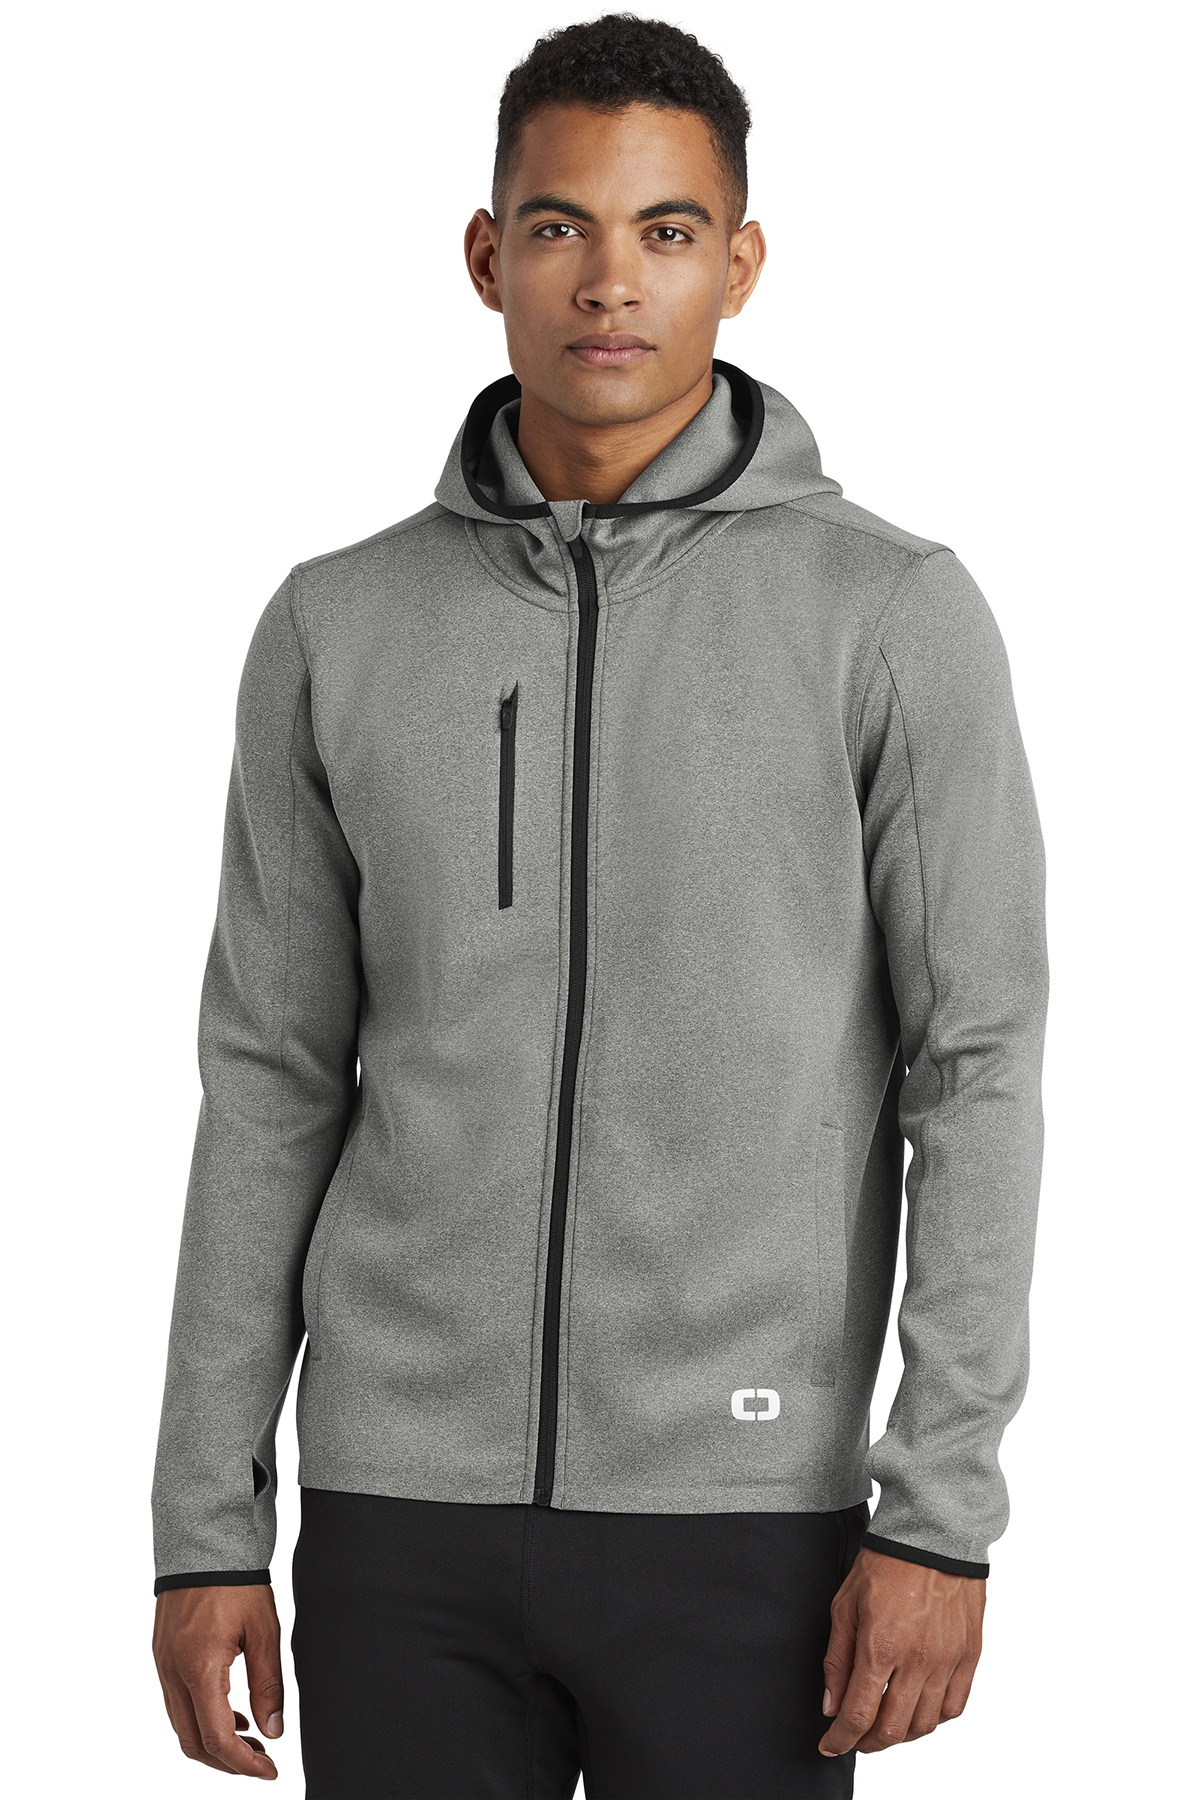 OGIO ENDURANCE OE728 - Men's Stealth Full-Zip Jacket